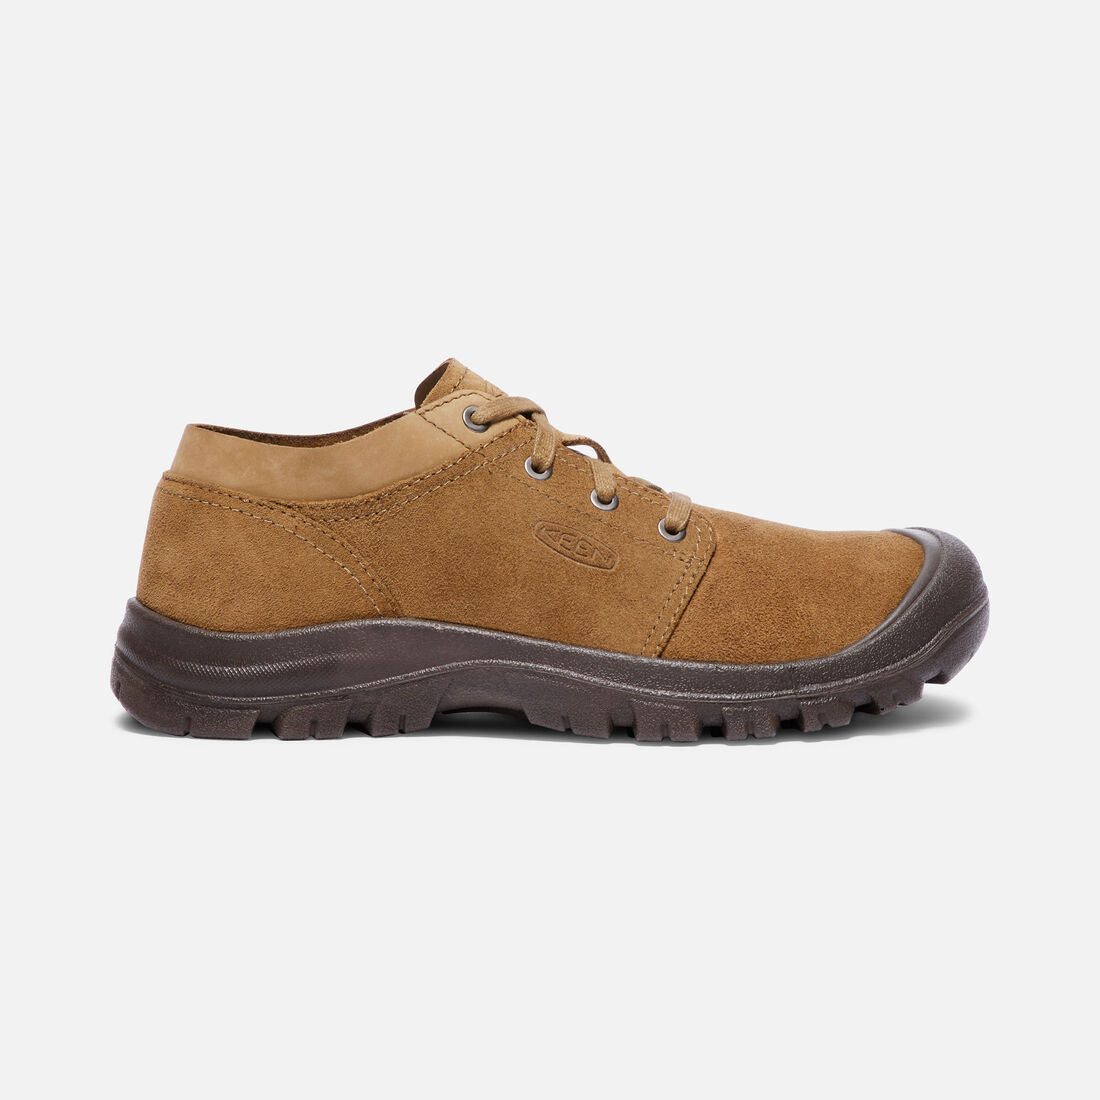 Men's Grayson Oxford in Coyote/Scylum - large view.